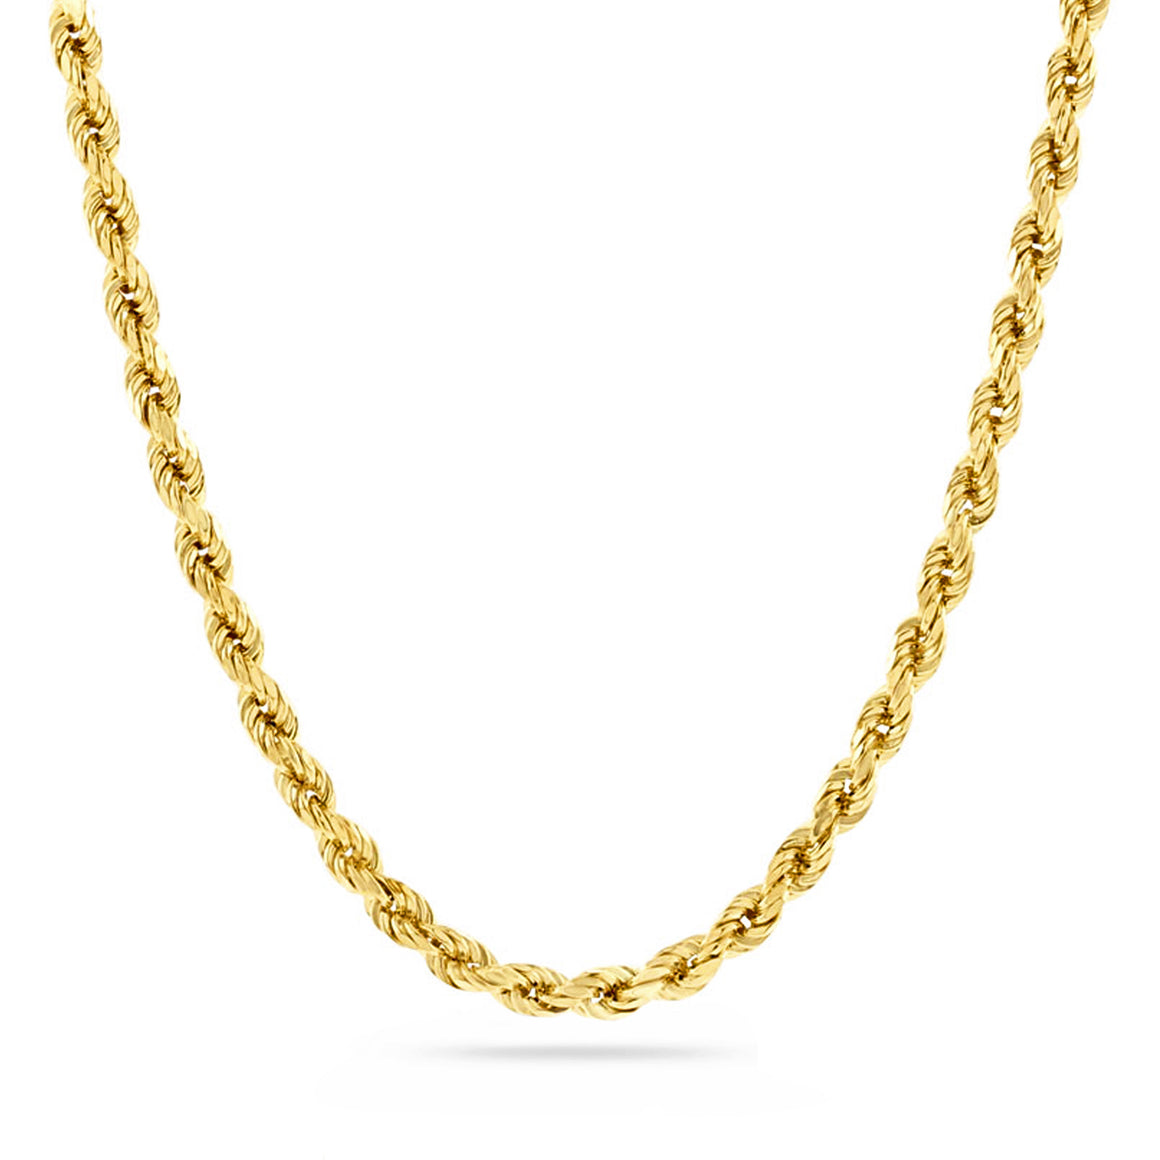 3mm Diamond Cut Rope Chain - 18k Yellow Gold